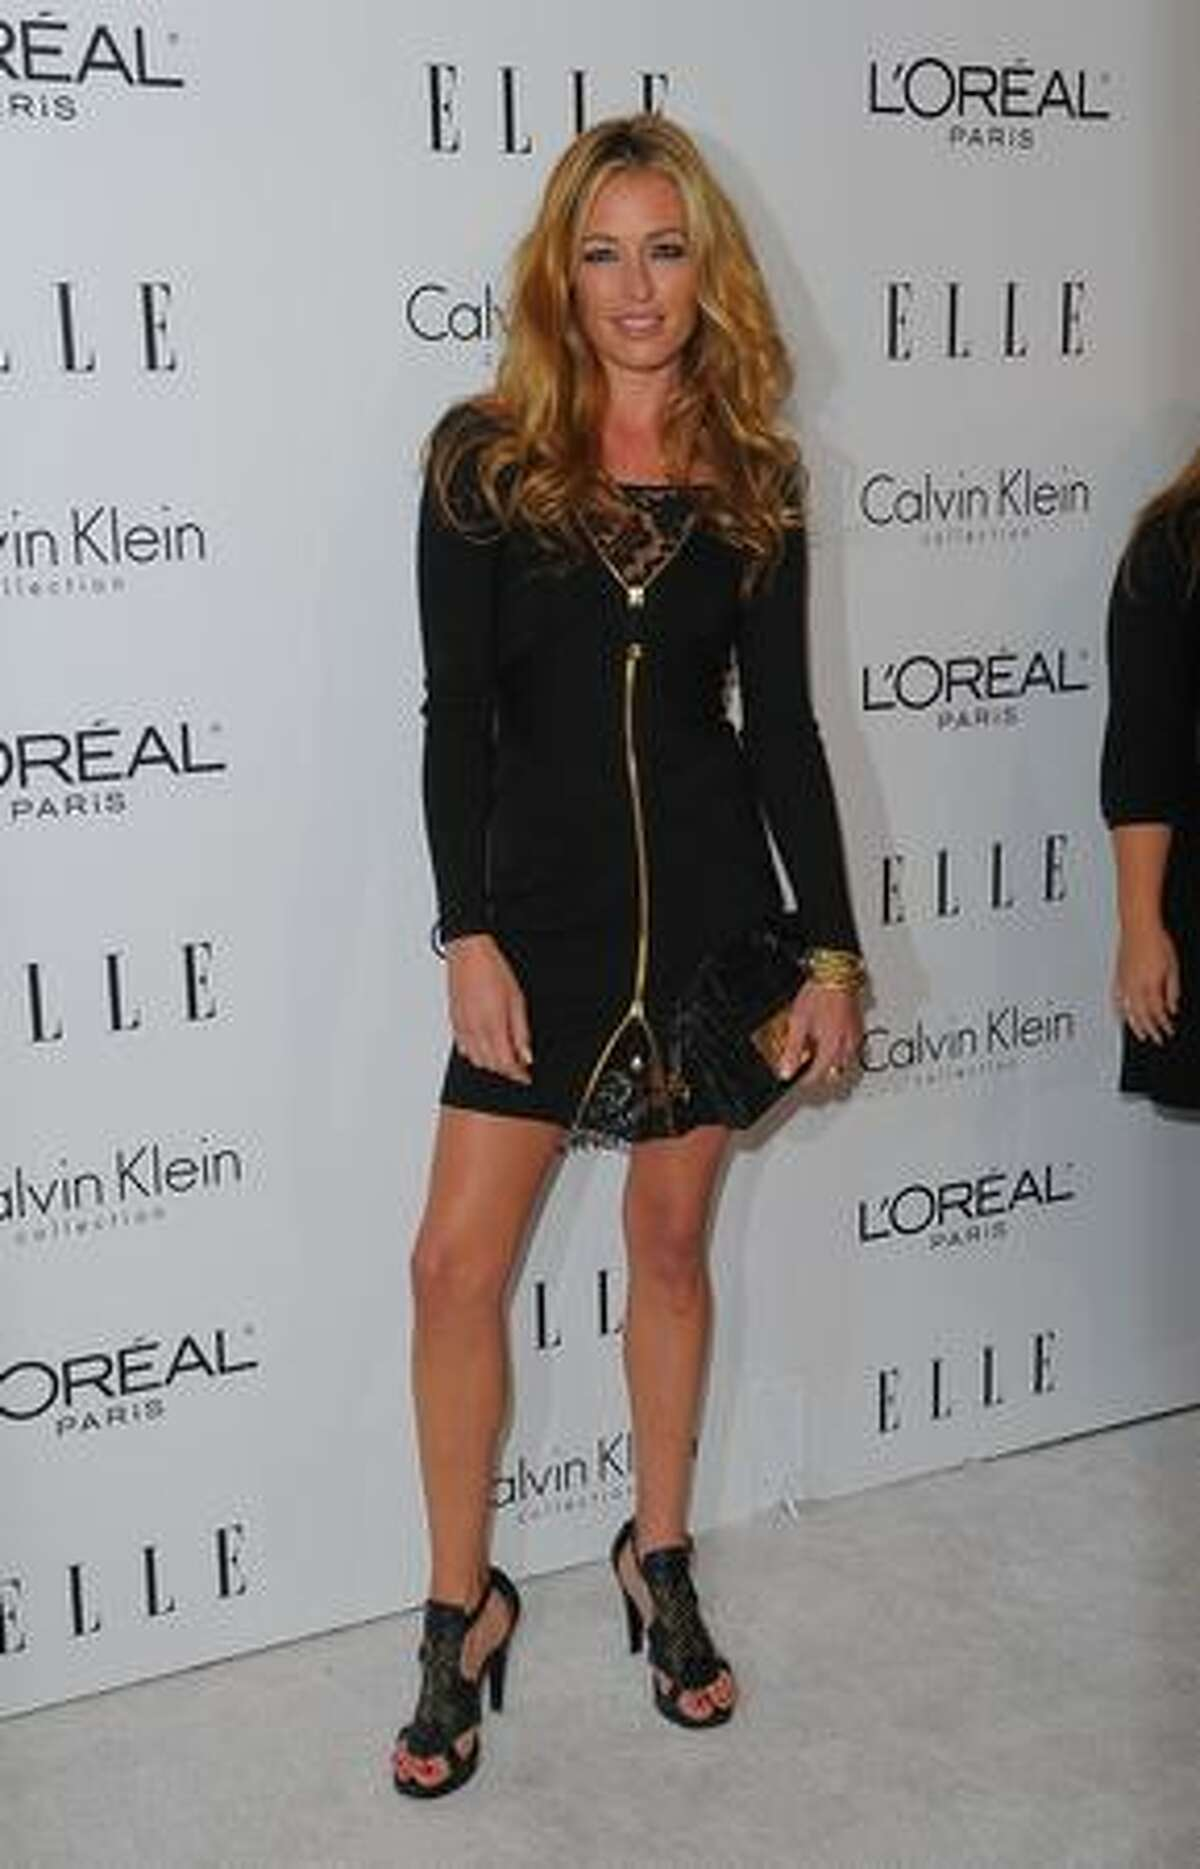 TV personality Cat Deeley attends the 16th Annual Elle Women in Hollywood Tribute at the Four Seasons Hotel in Beverly Hills, Calif.